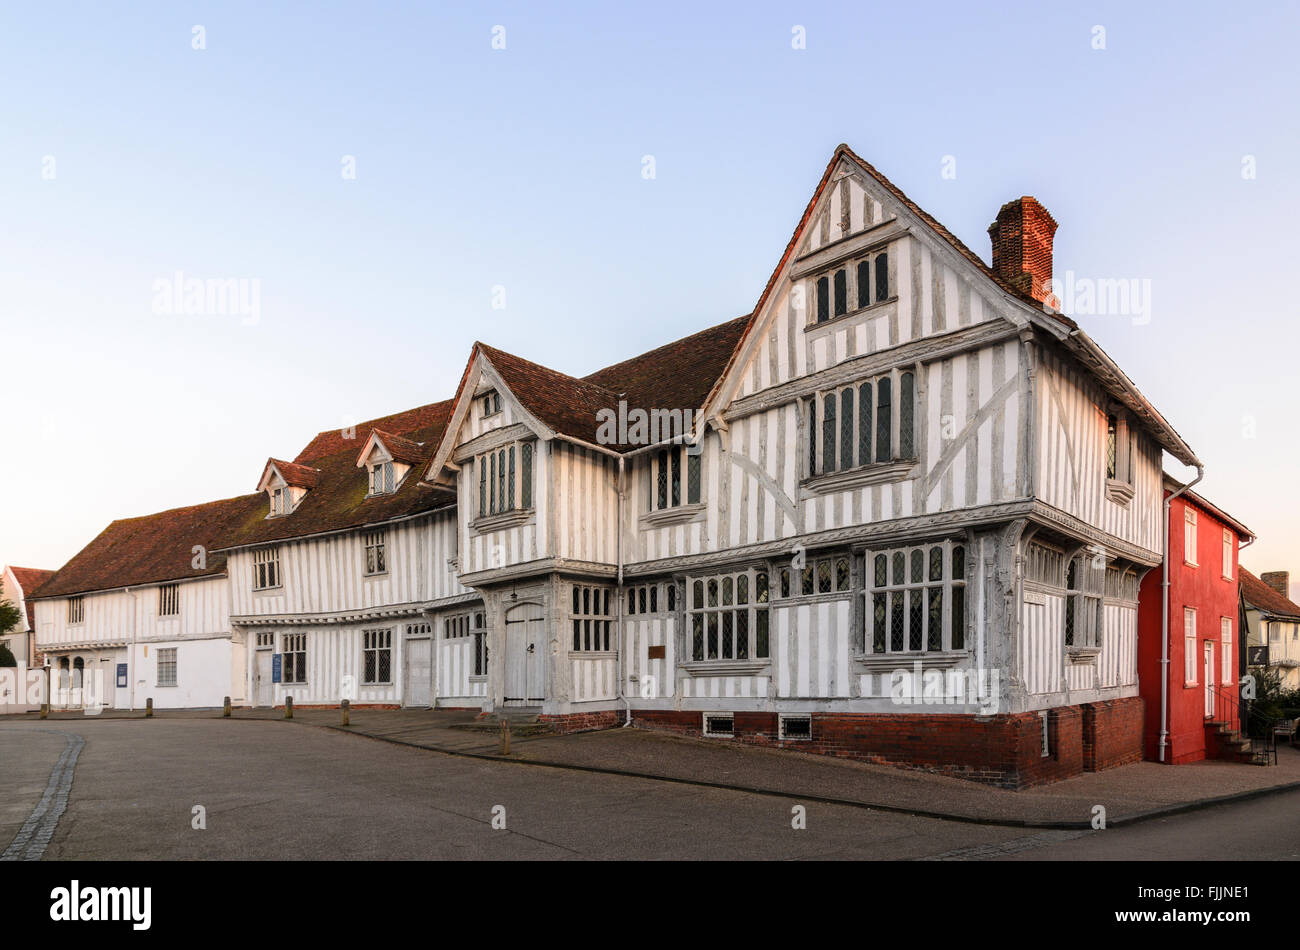 Guildhall of Corpus Christi, Lavenham, Suffolk, England, UK. - Stock Image